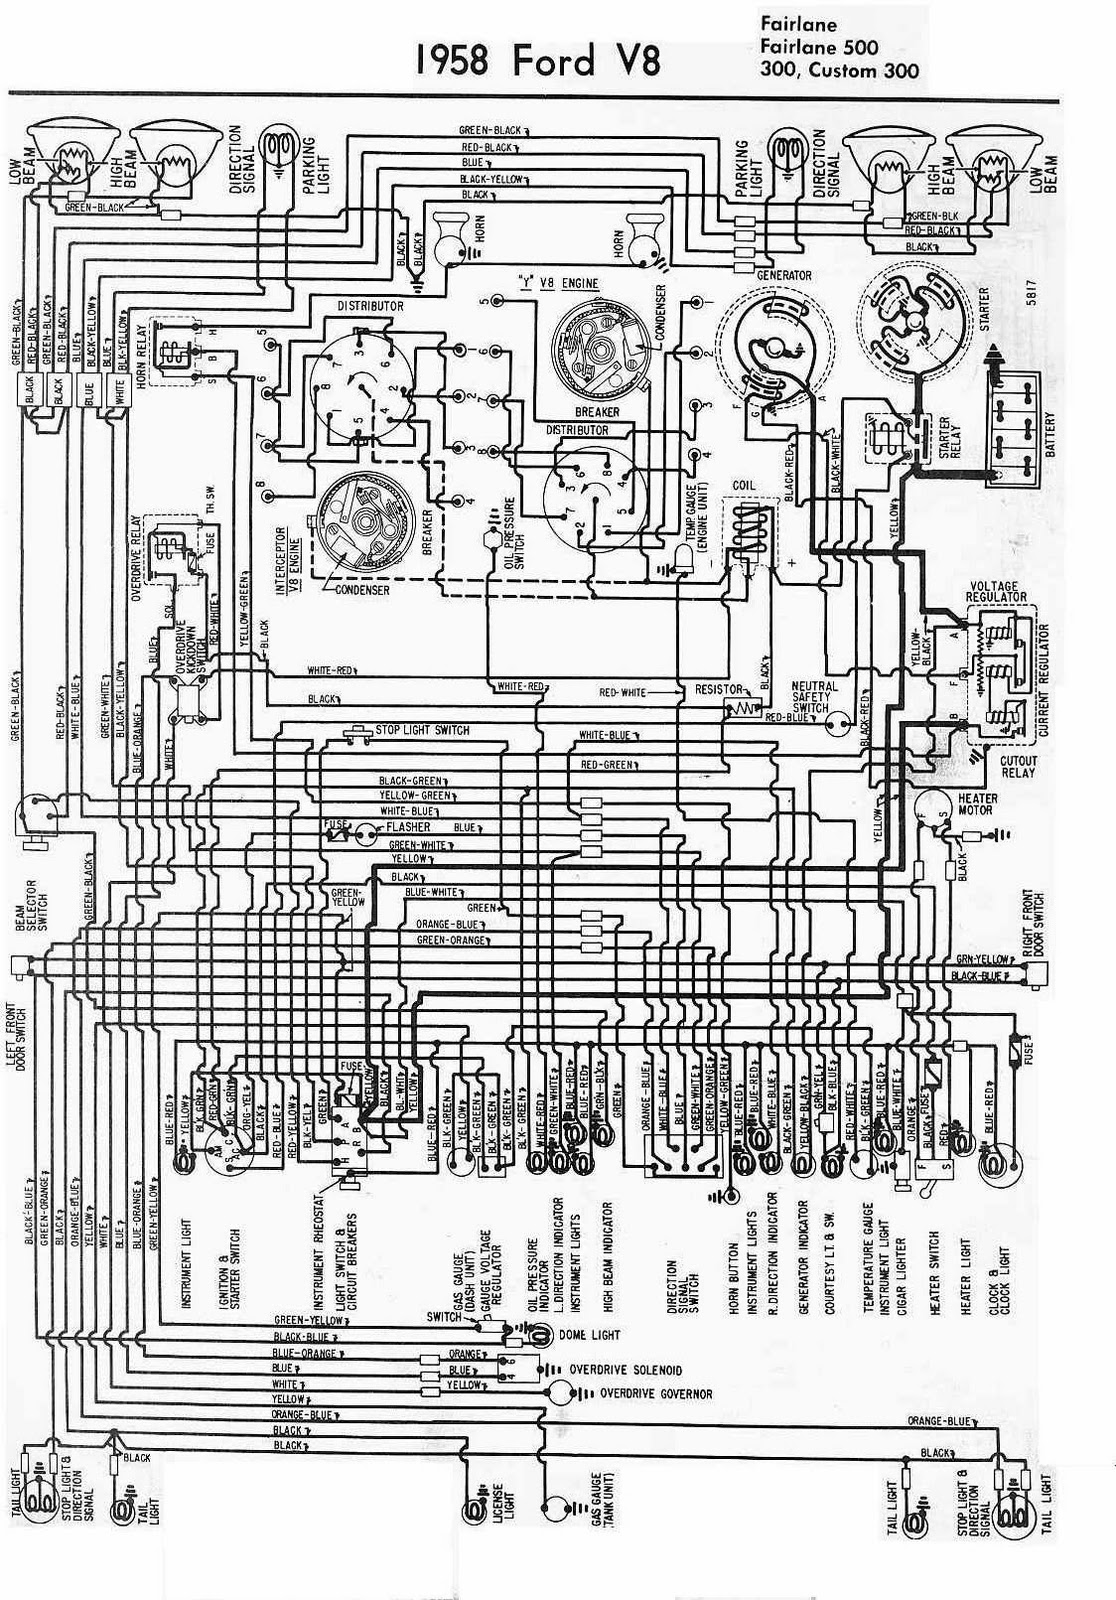 1955 ford wiring schematic wiring diagram blog 1955 ford wiring diagram free [ 1116 x 1600 Pixel ]